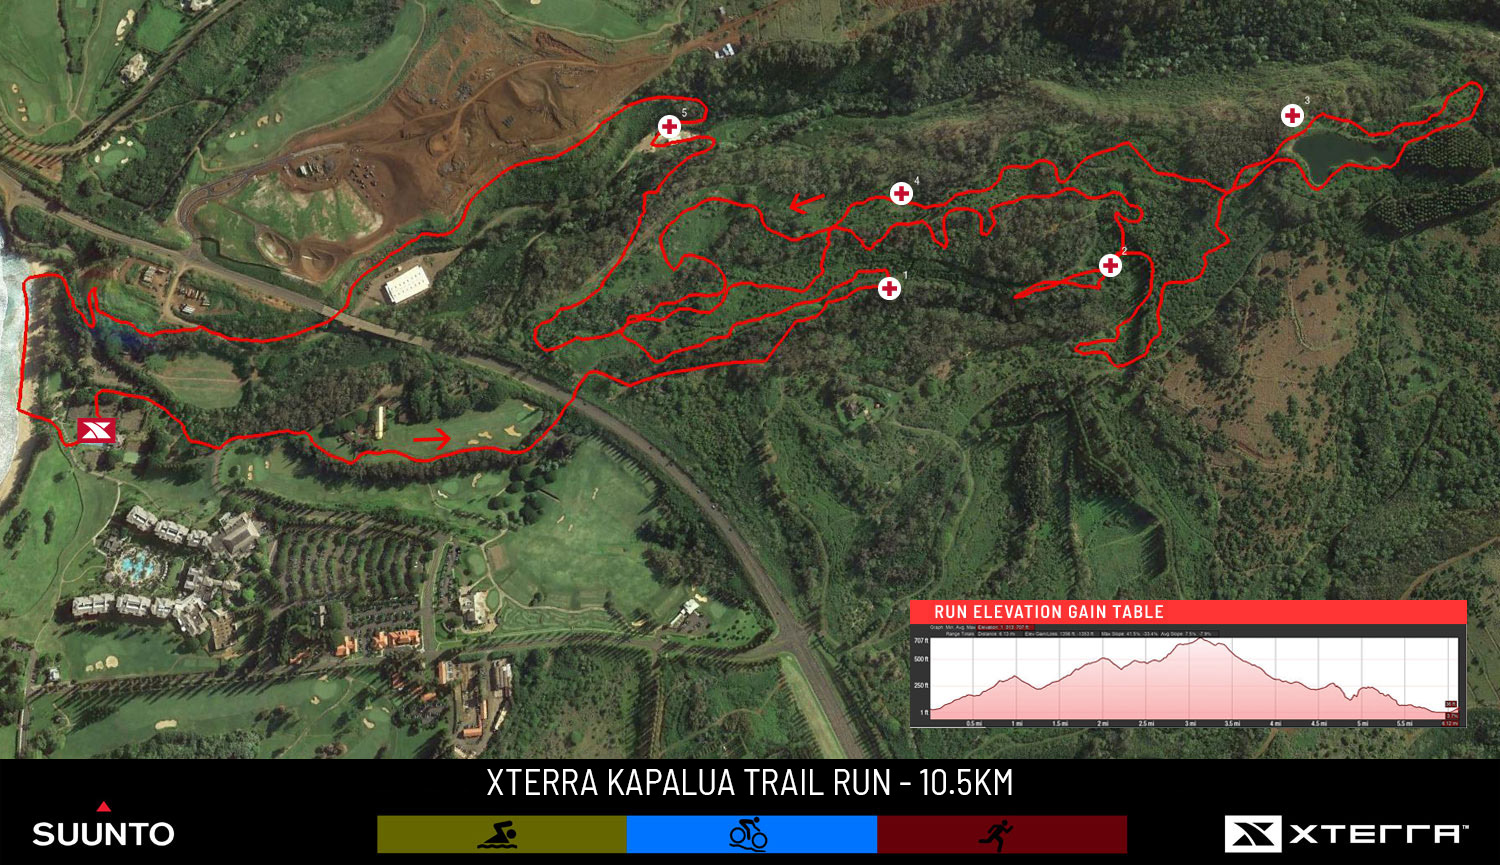 XTERRA Kapalua 10km Trail Run Map